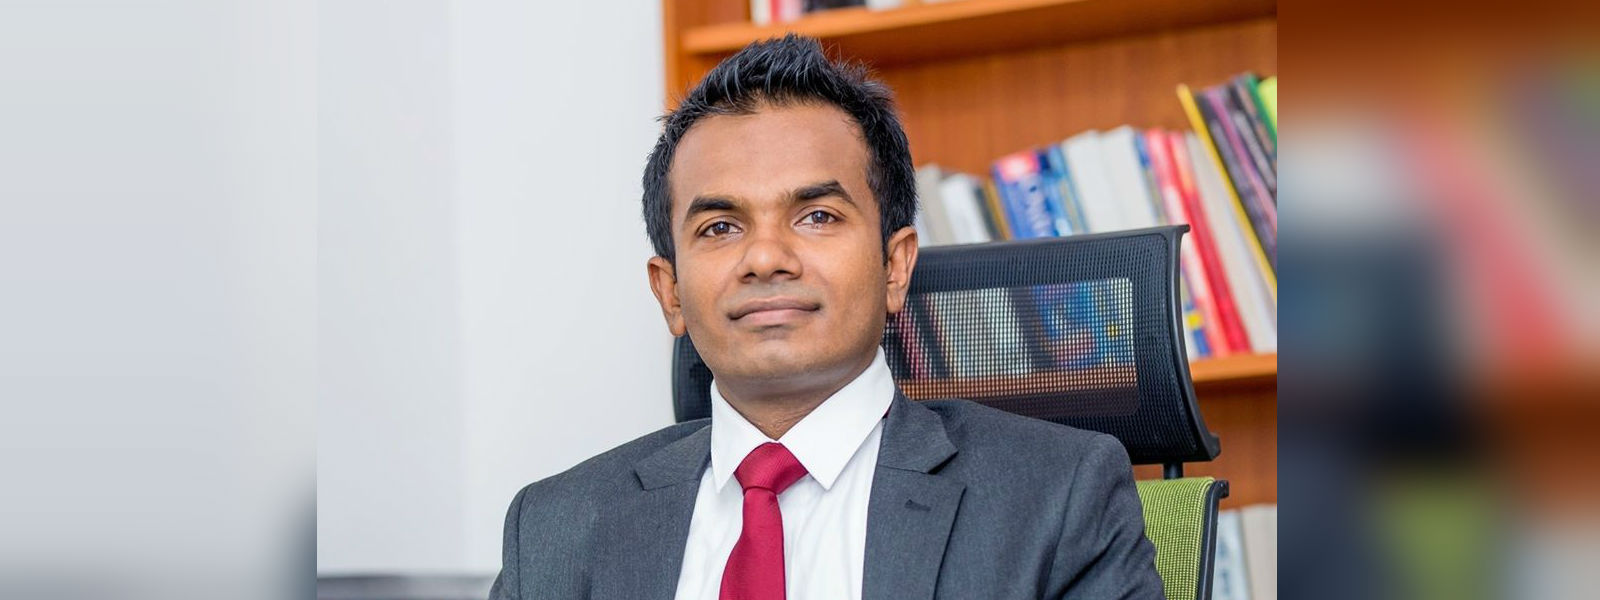 Chairman of the Land Reform Commission Nilantha Wijesinghe assumes duties